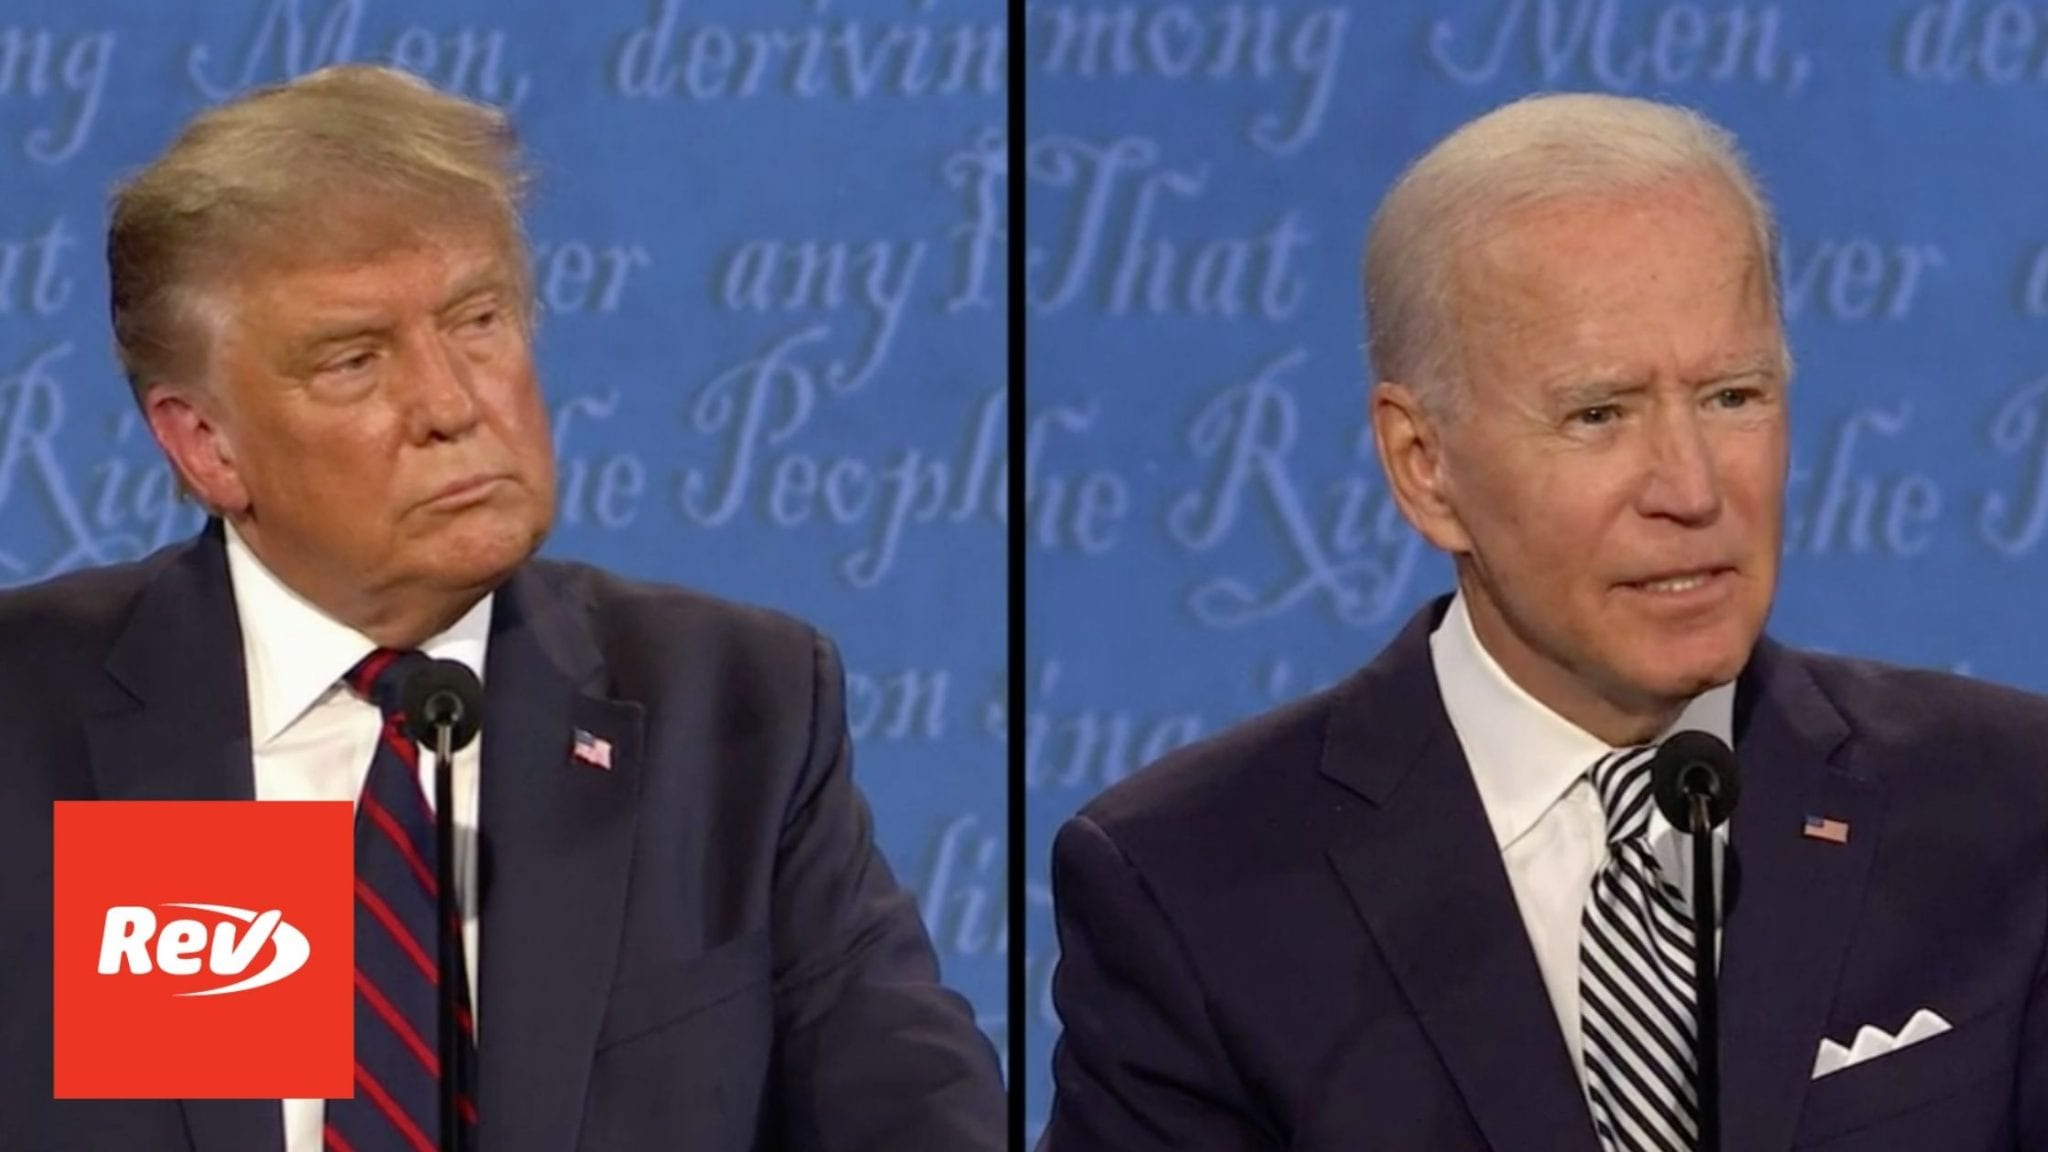 Donald Trump Joe Biden 1st Presidential Debate Transcript 2020 Rev